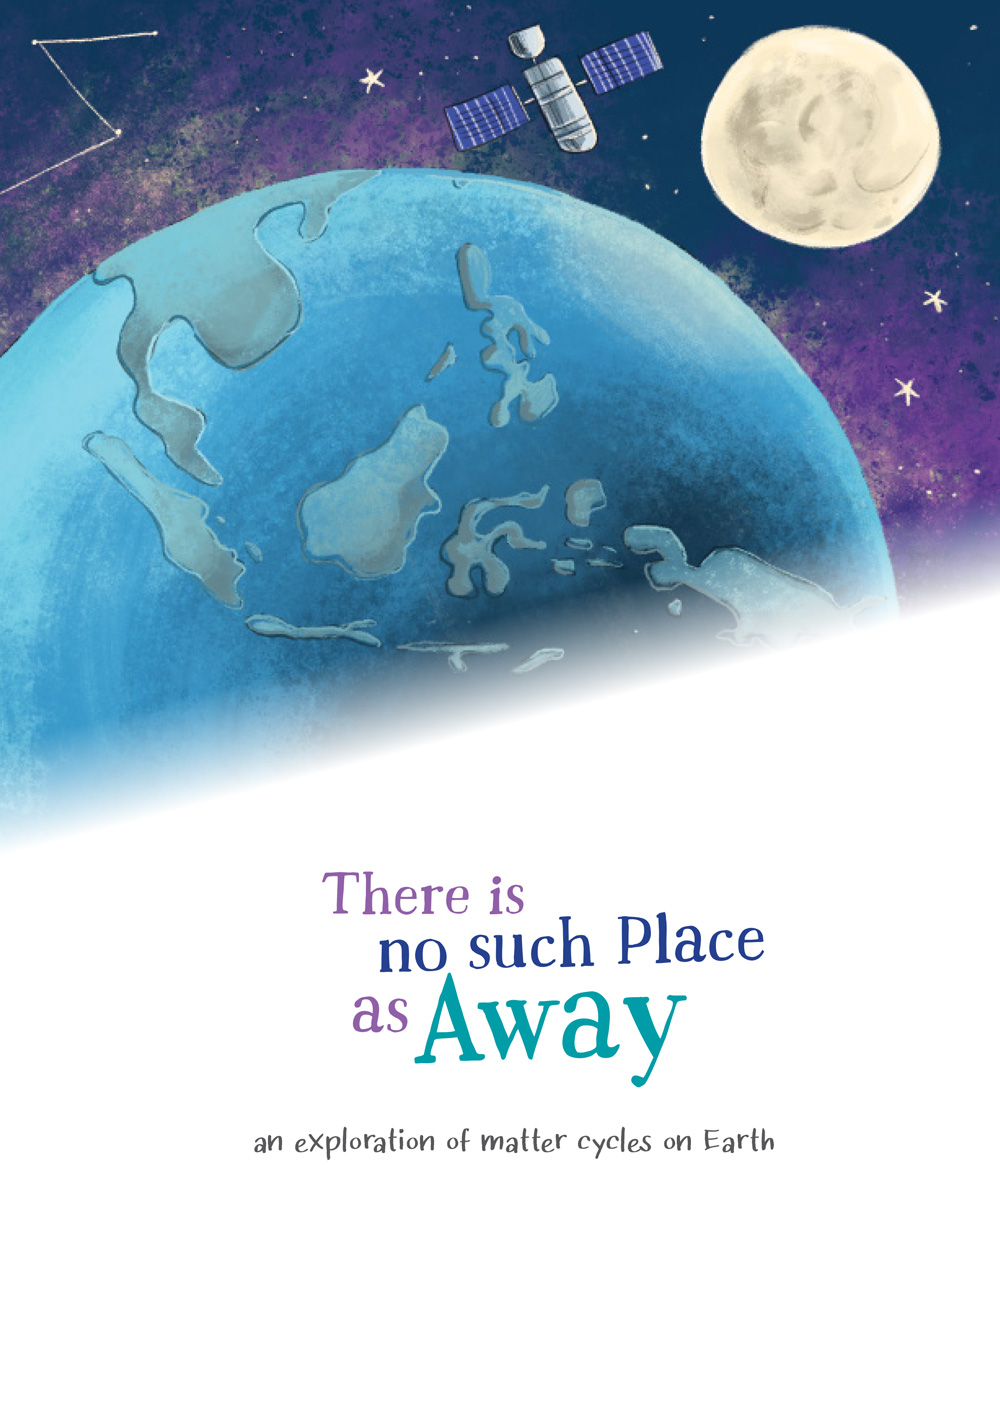 There is no such Place as Away